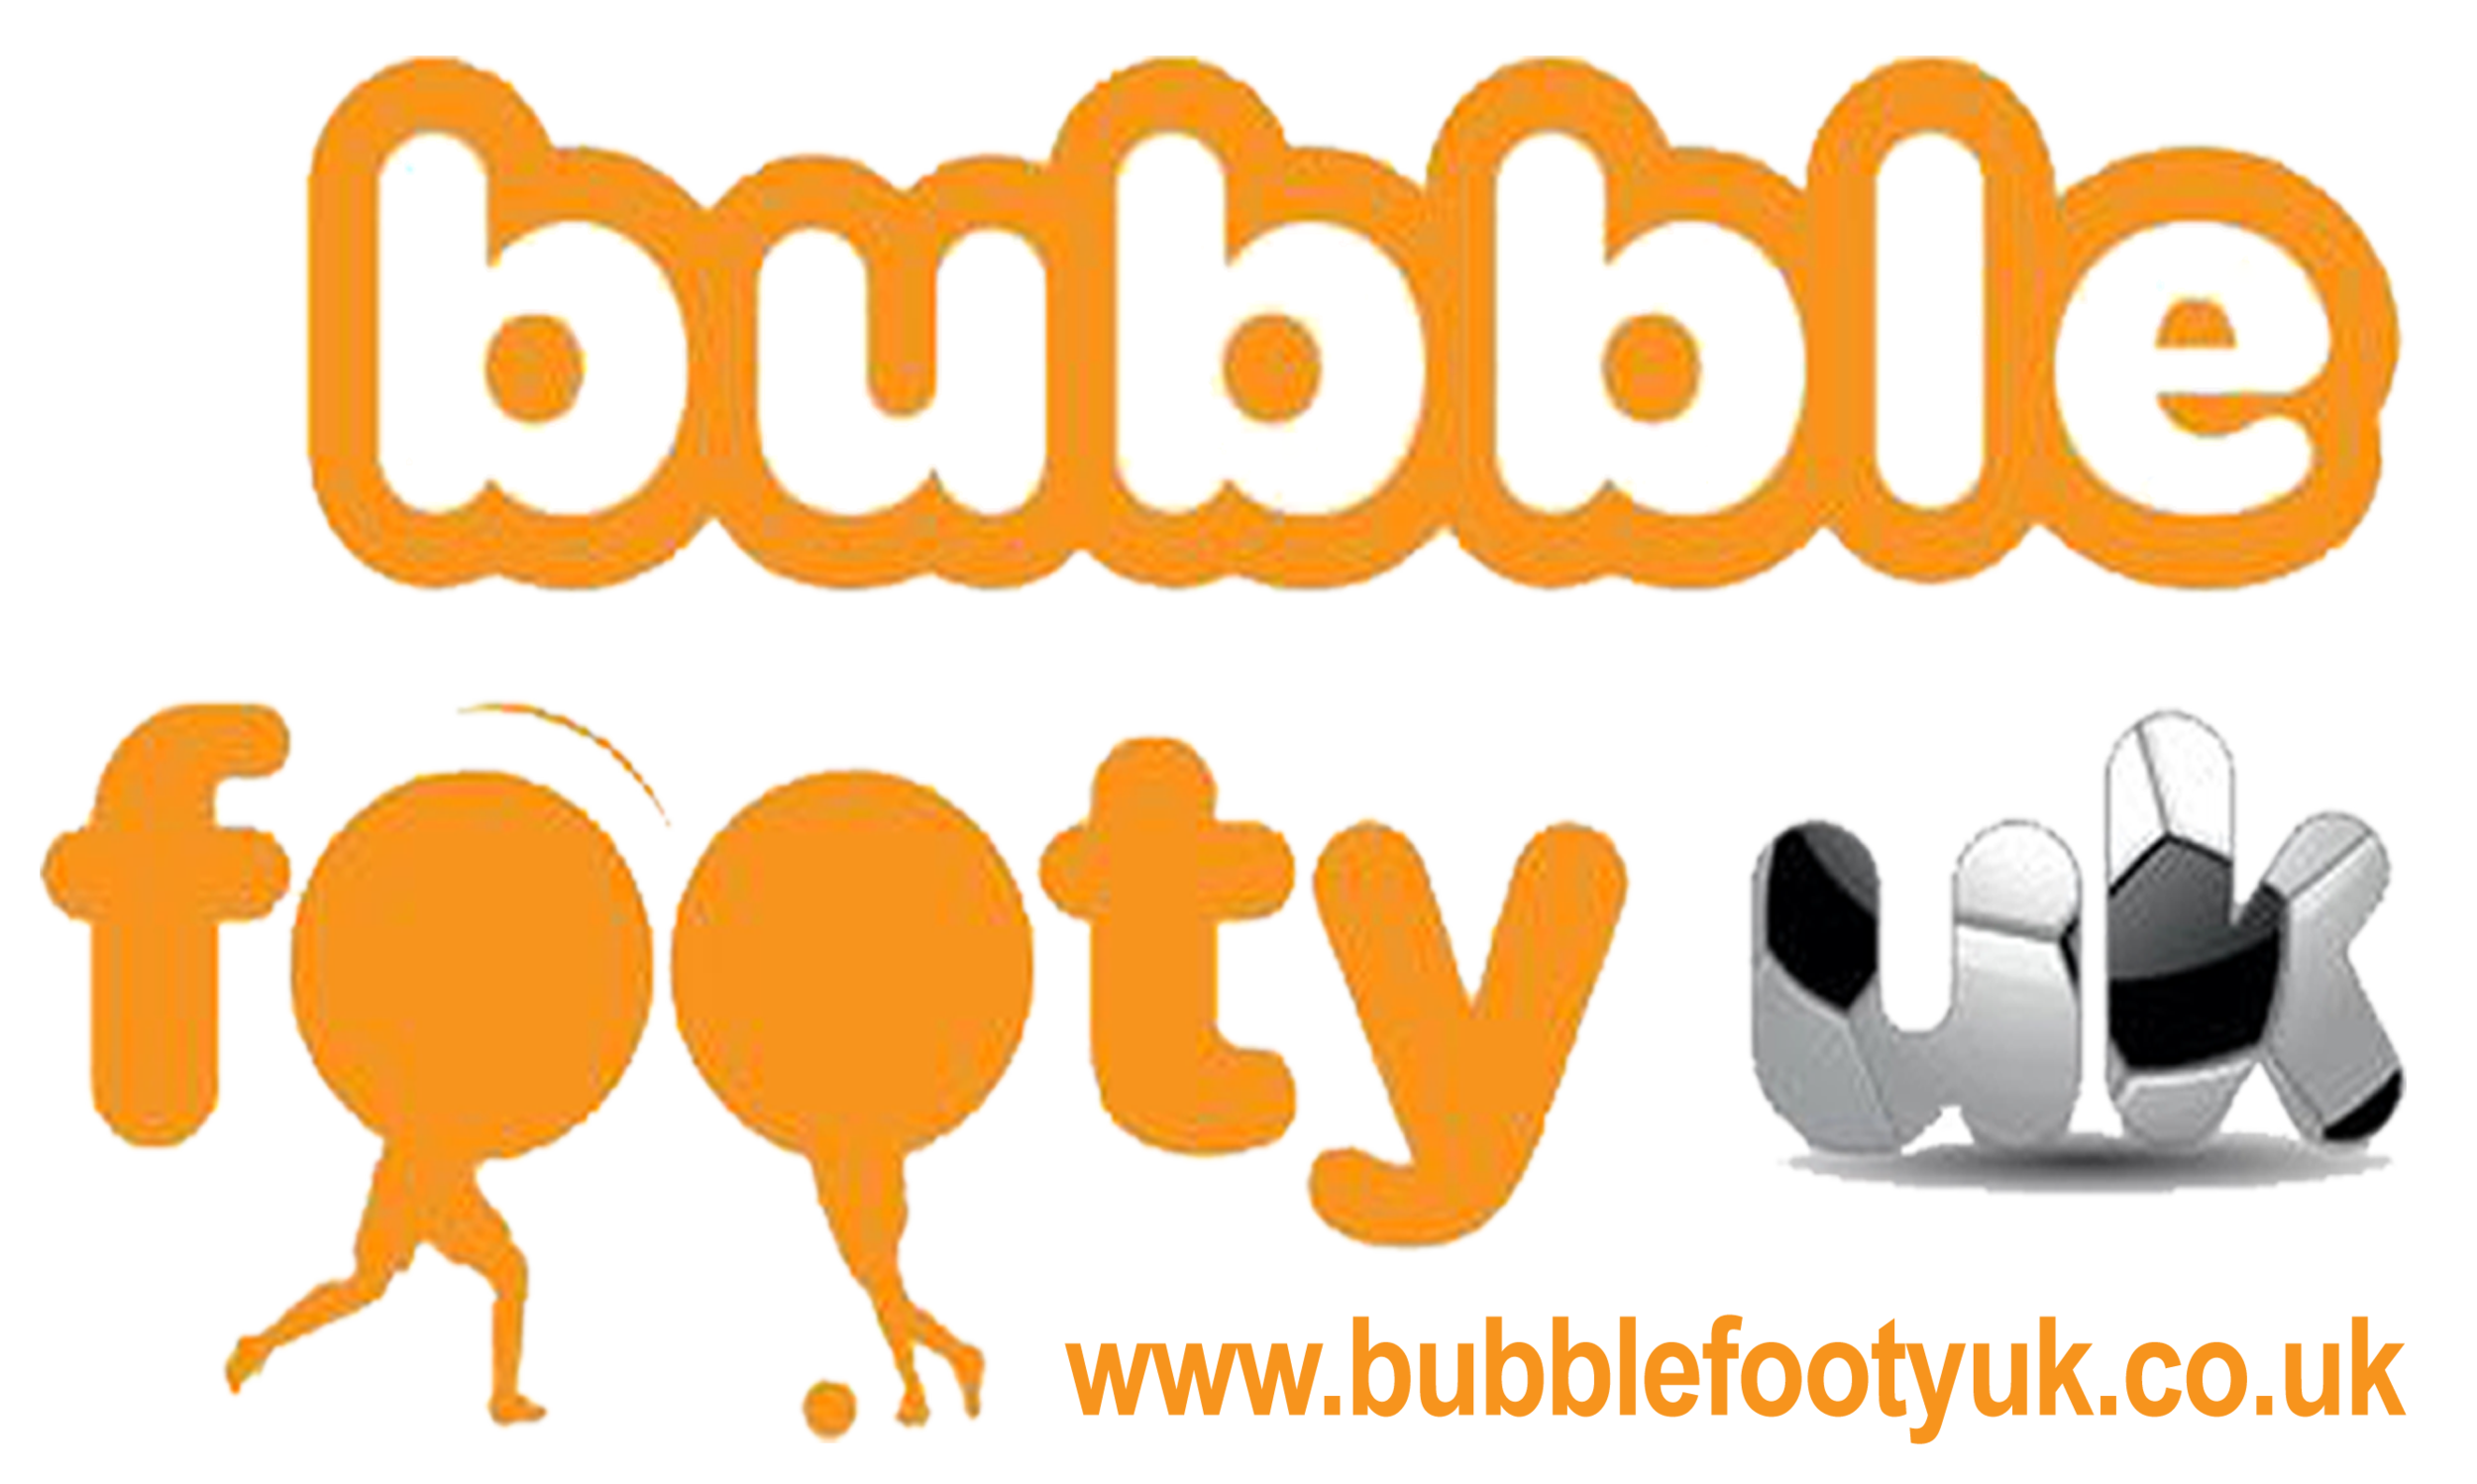 Bubble Footy